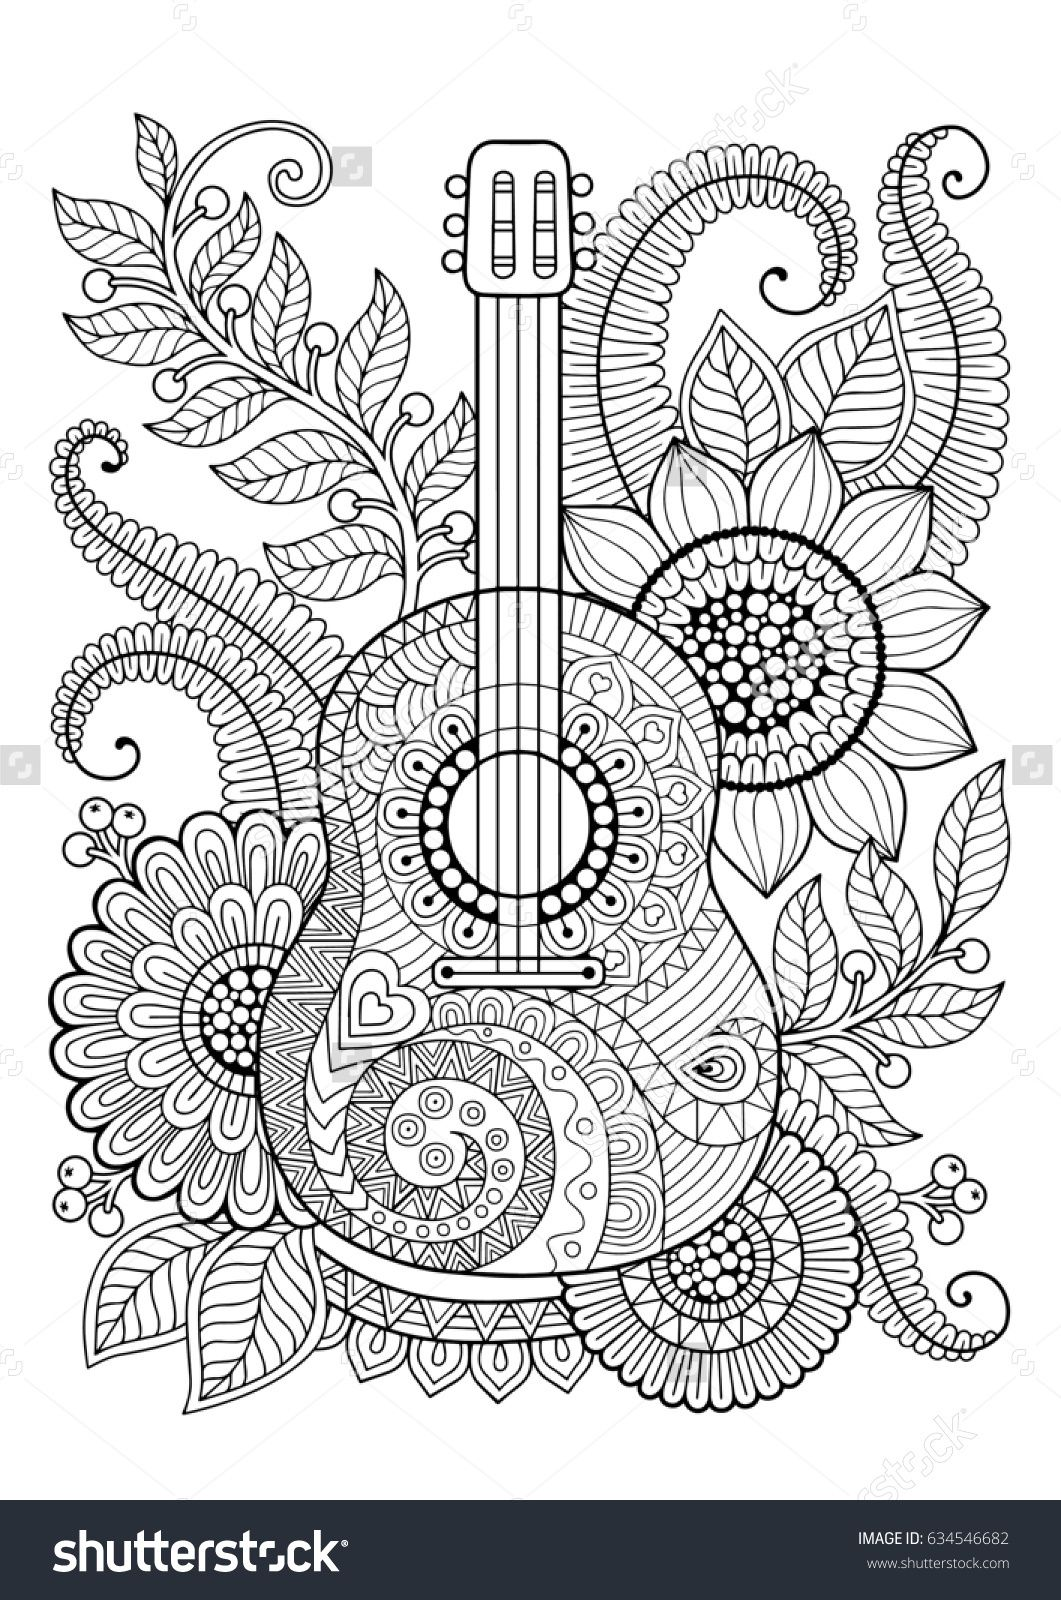 Coloring page for adult. Antistress and relax meditation